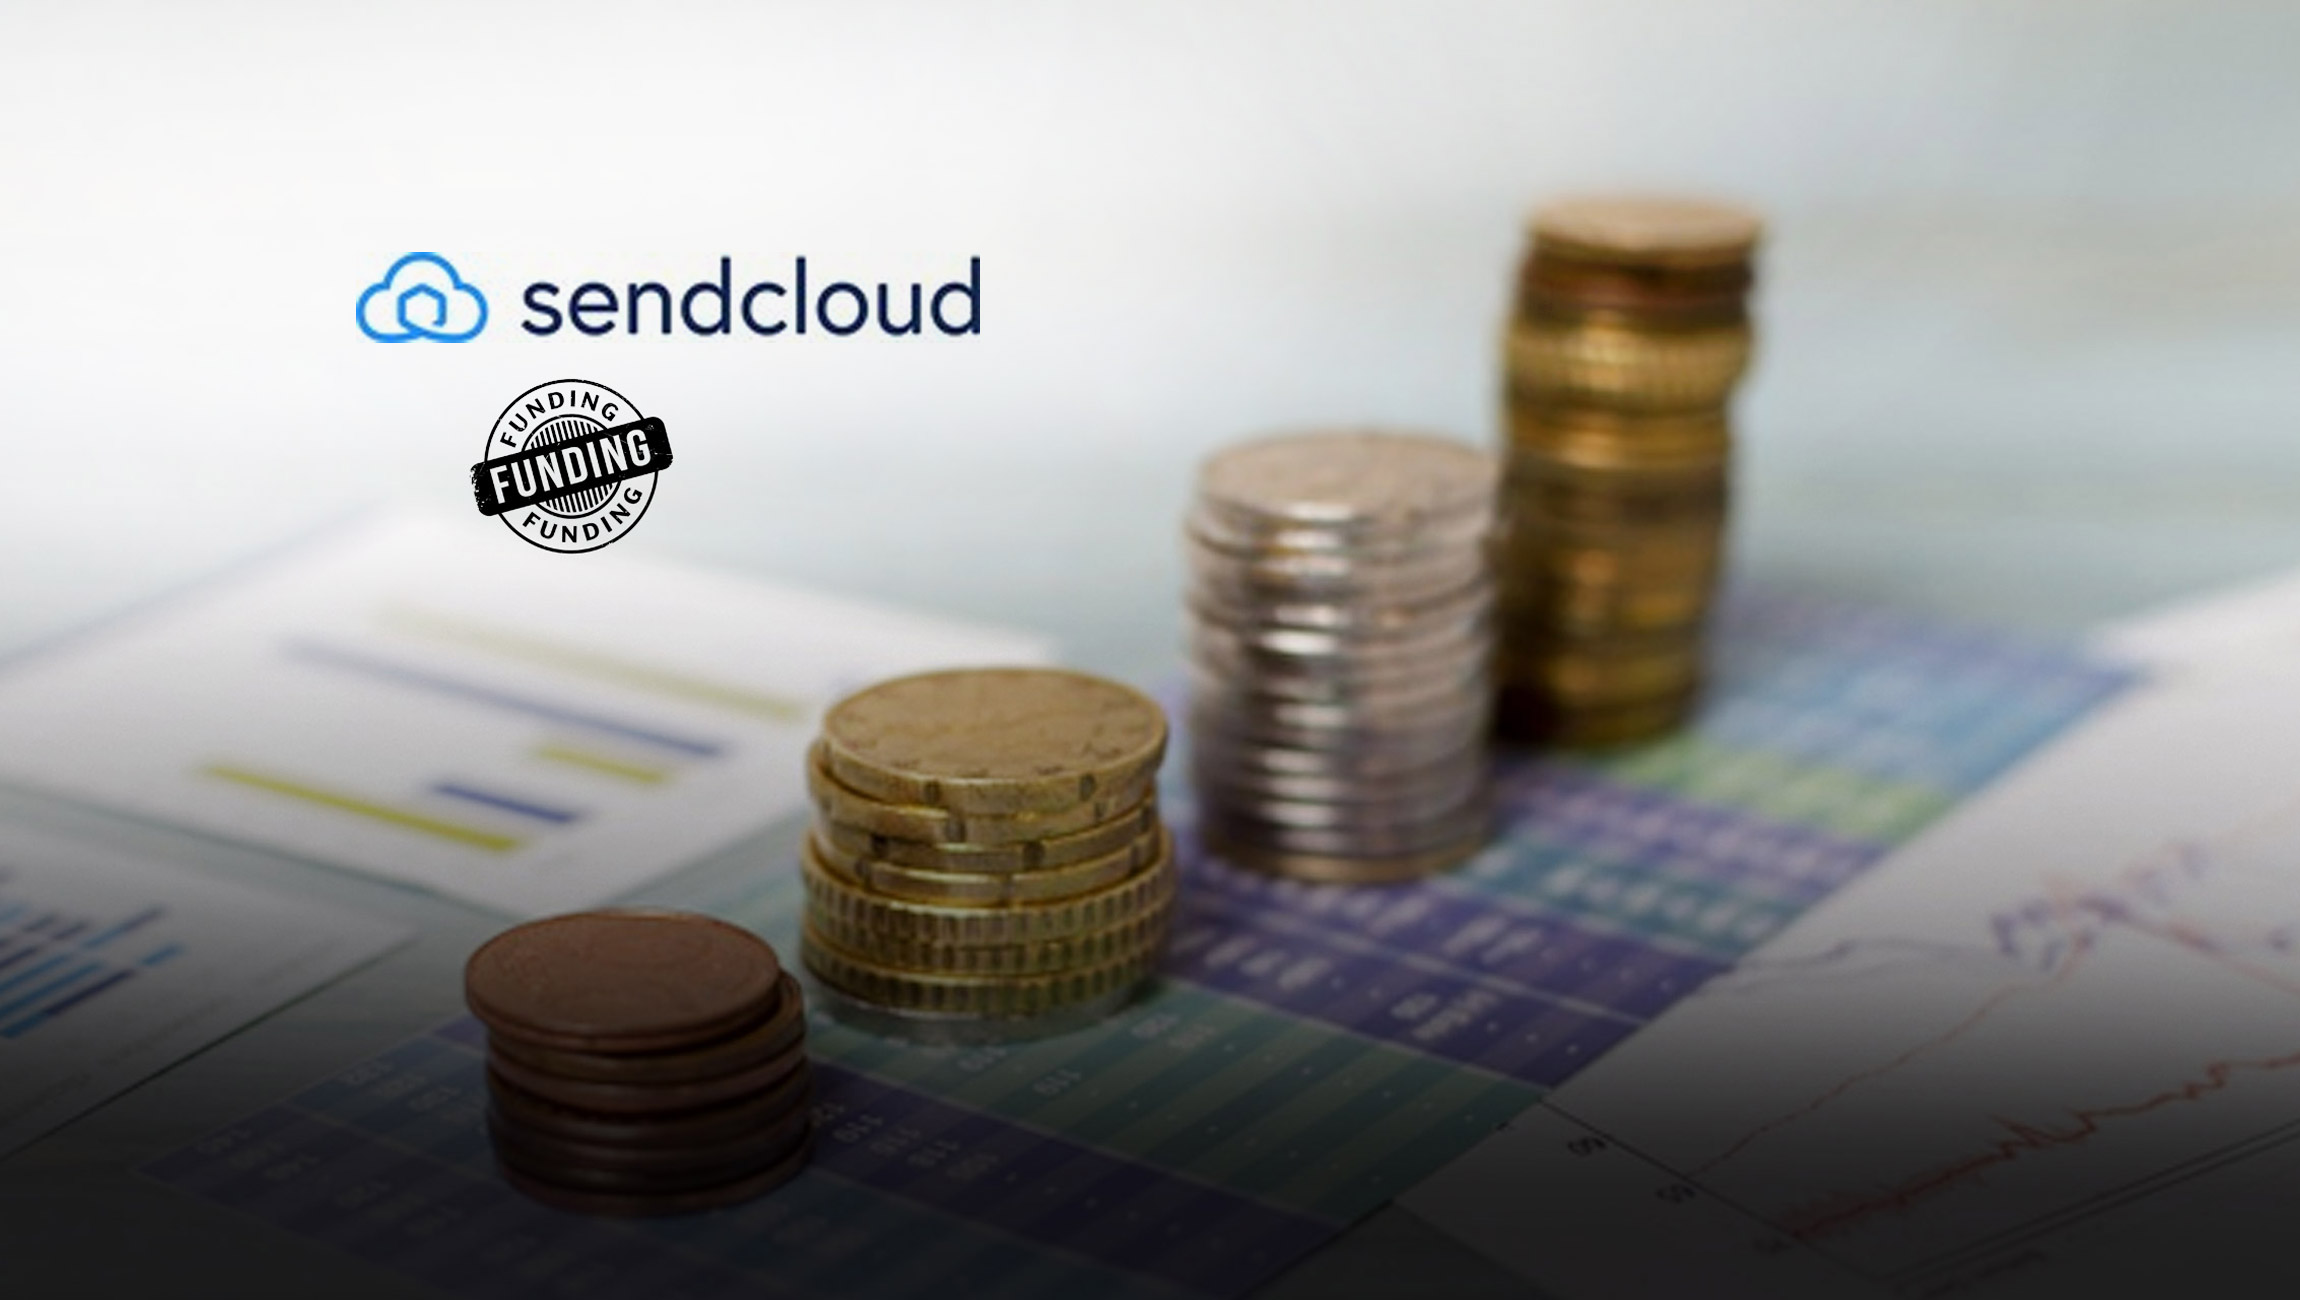 Sendcloud Raises $177 Million in Series C Funding to Accelerate Growth of its All-In-One Shipping Platform